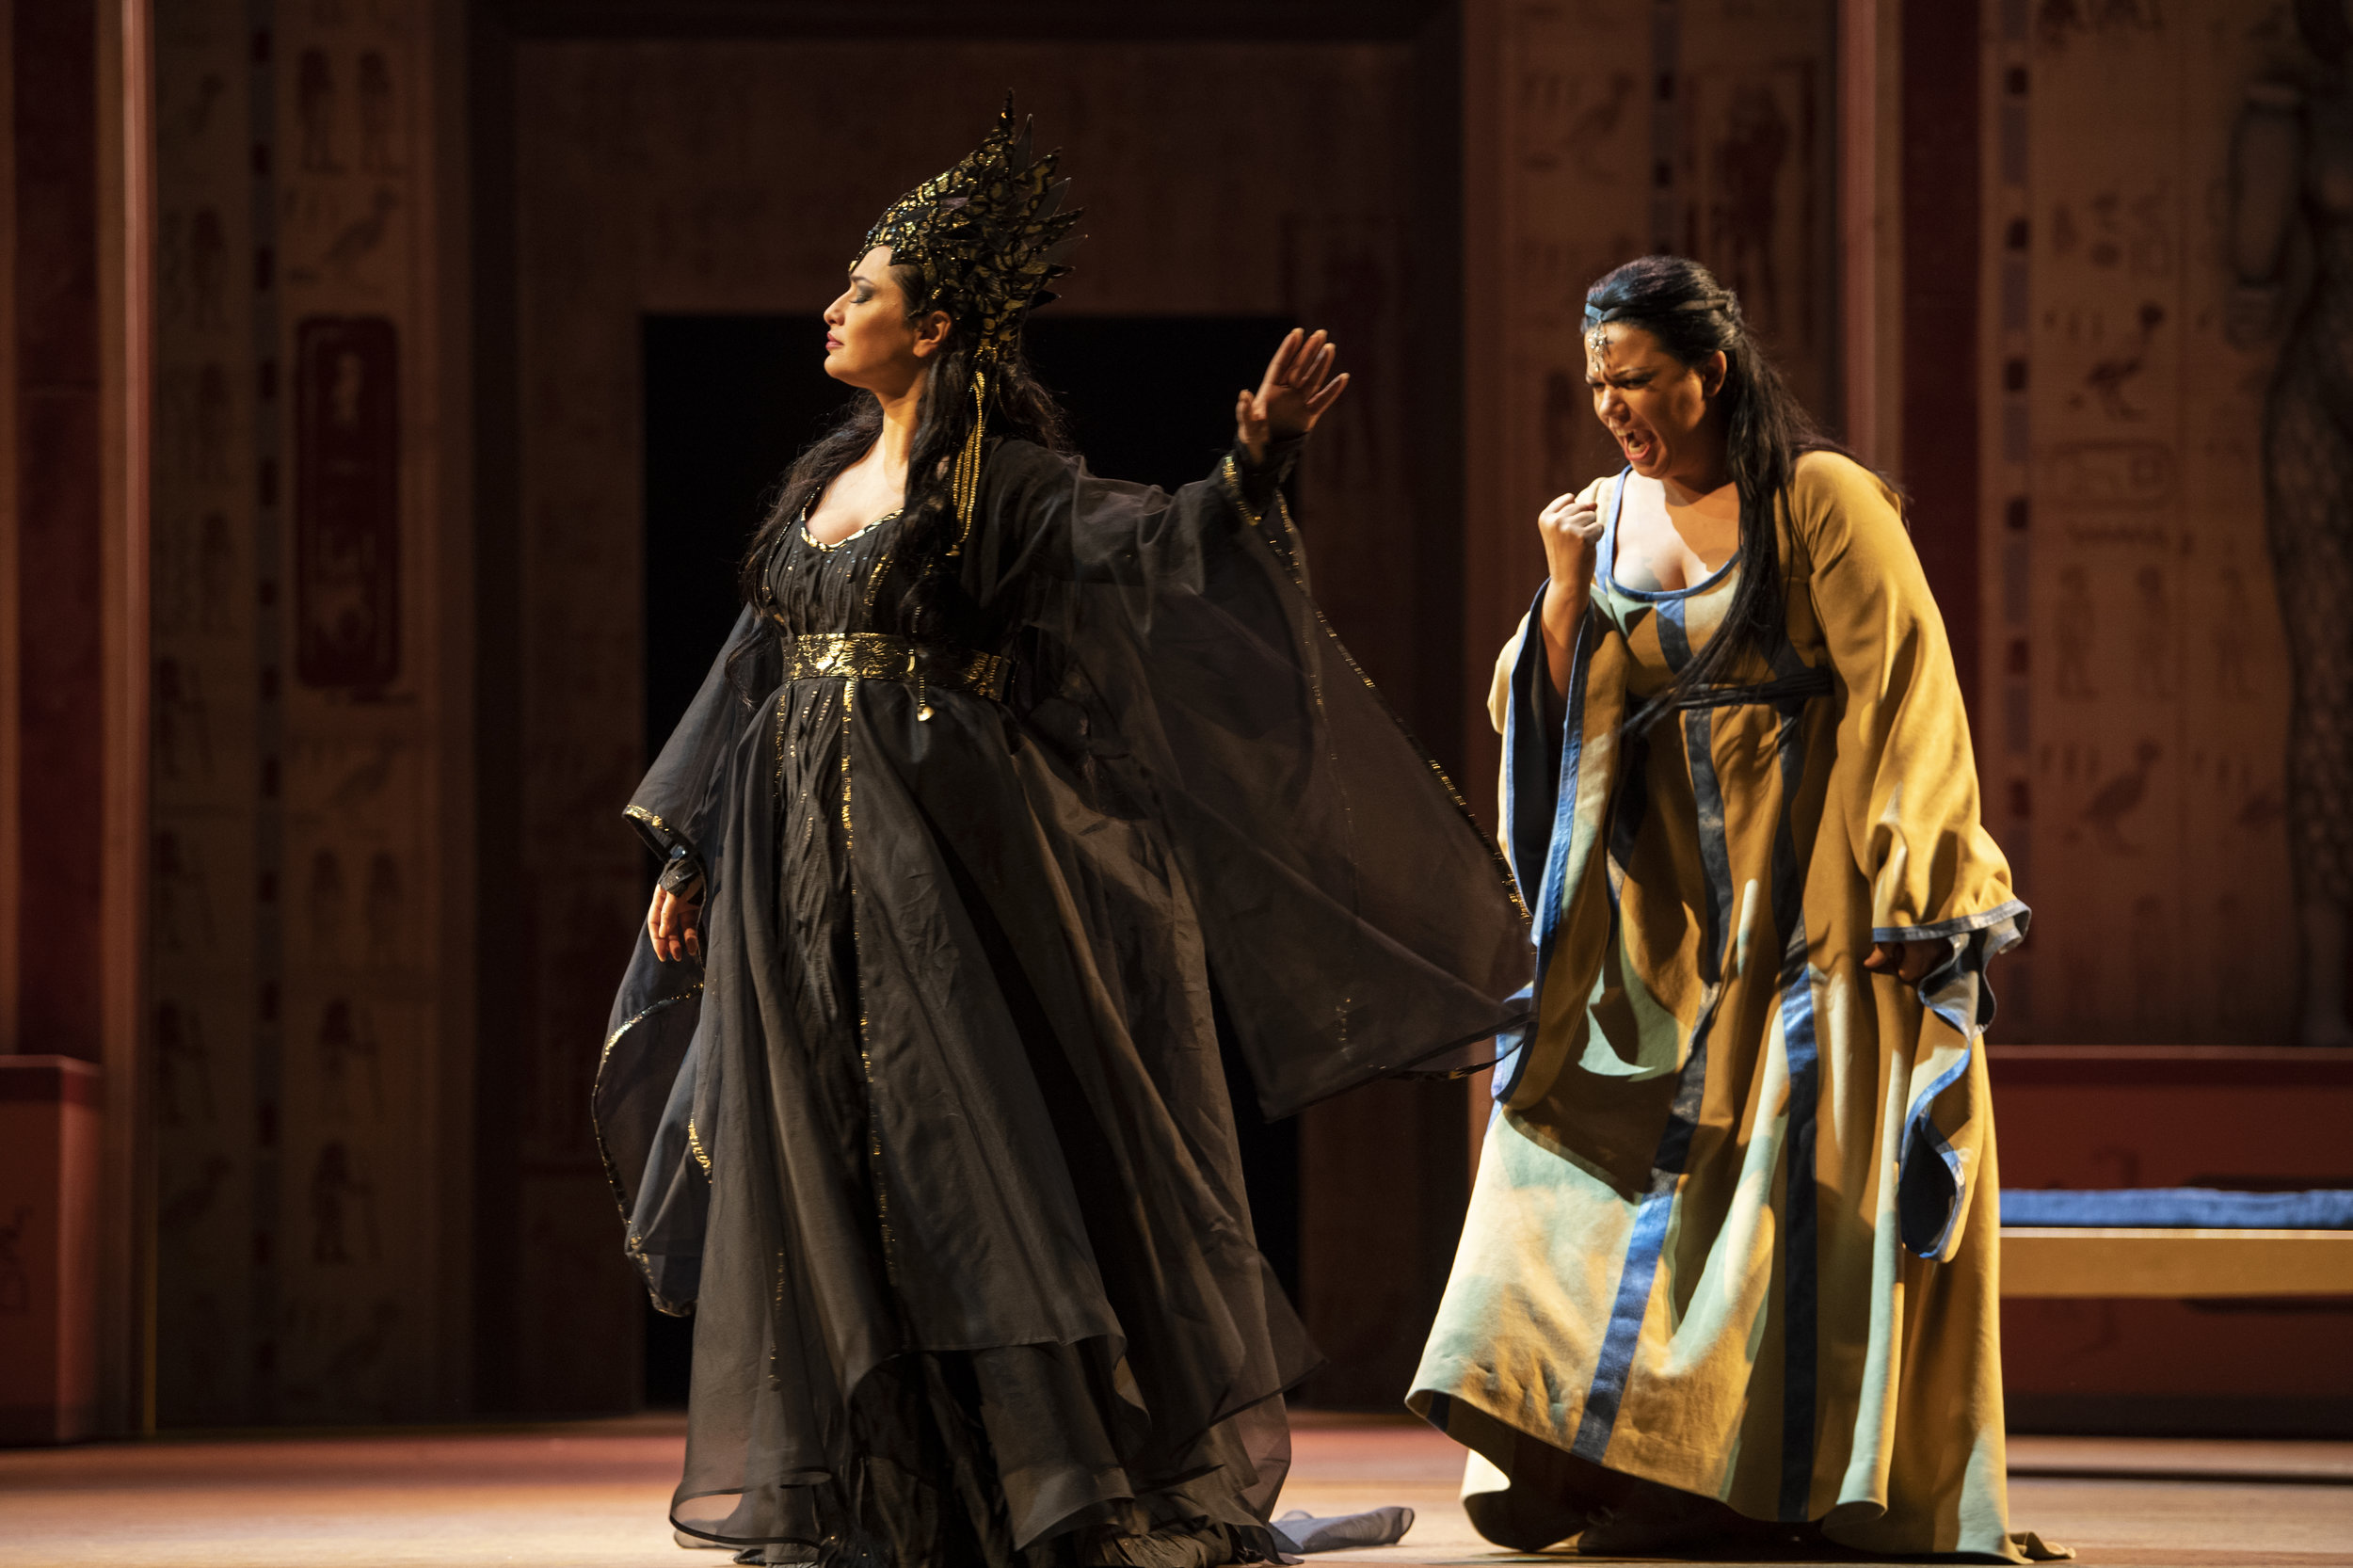 Aida at Opéra Royal de Wallonie-Liège - Photo by Jonathan Berger